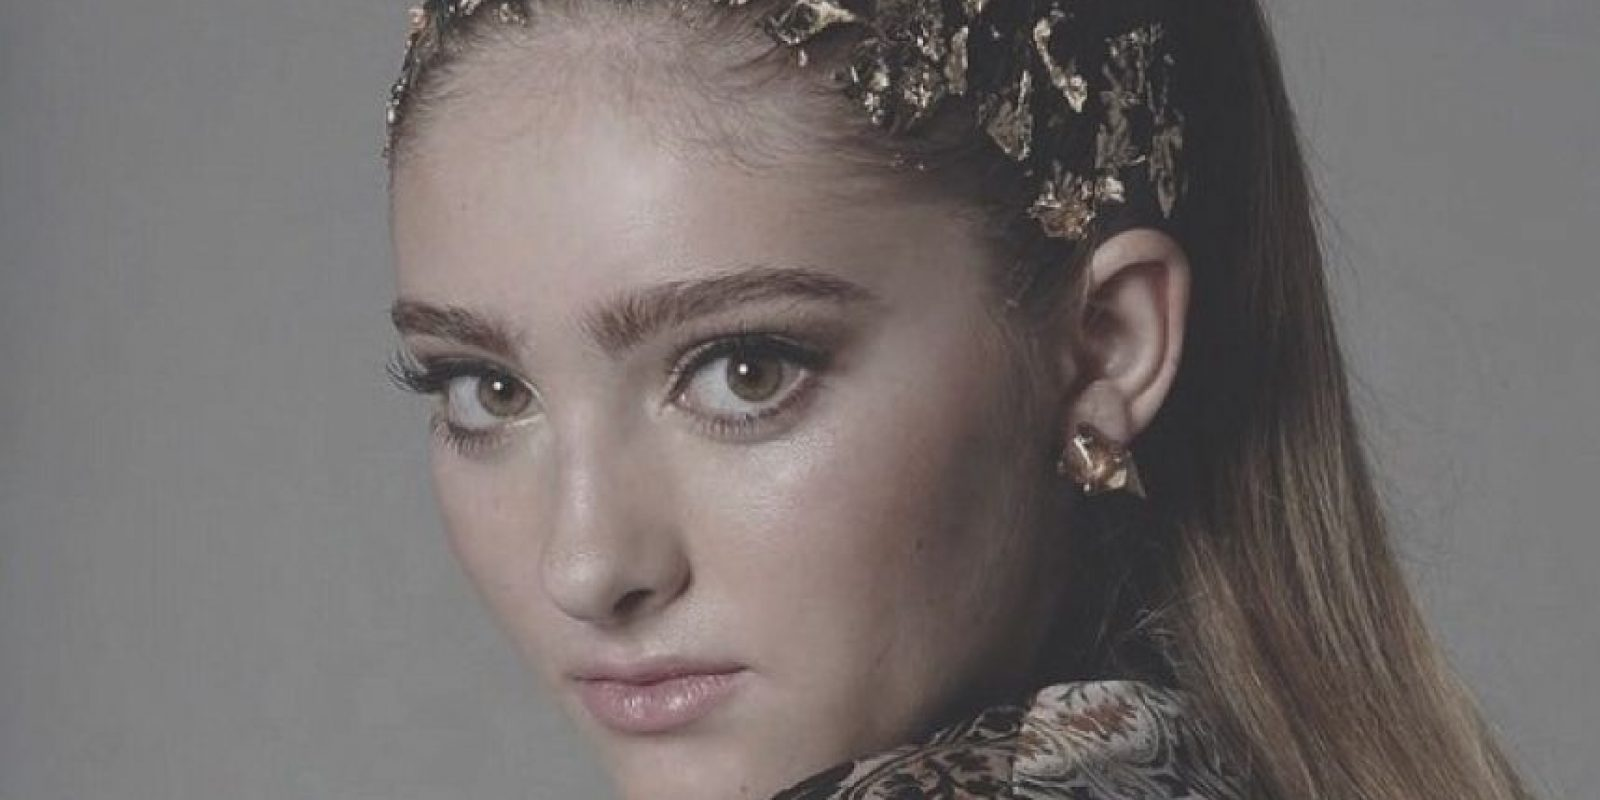 Foto: Vía nstagram.com/willowshields